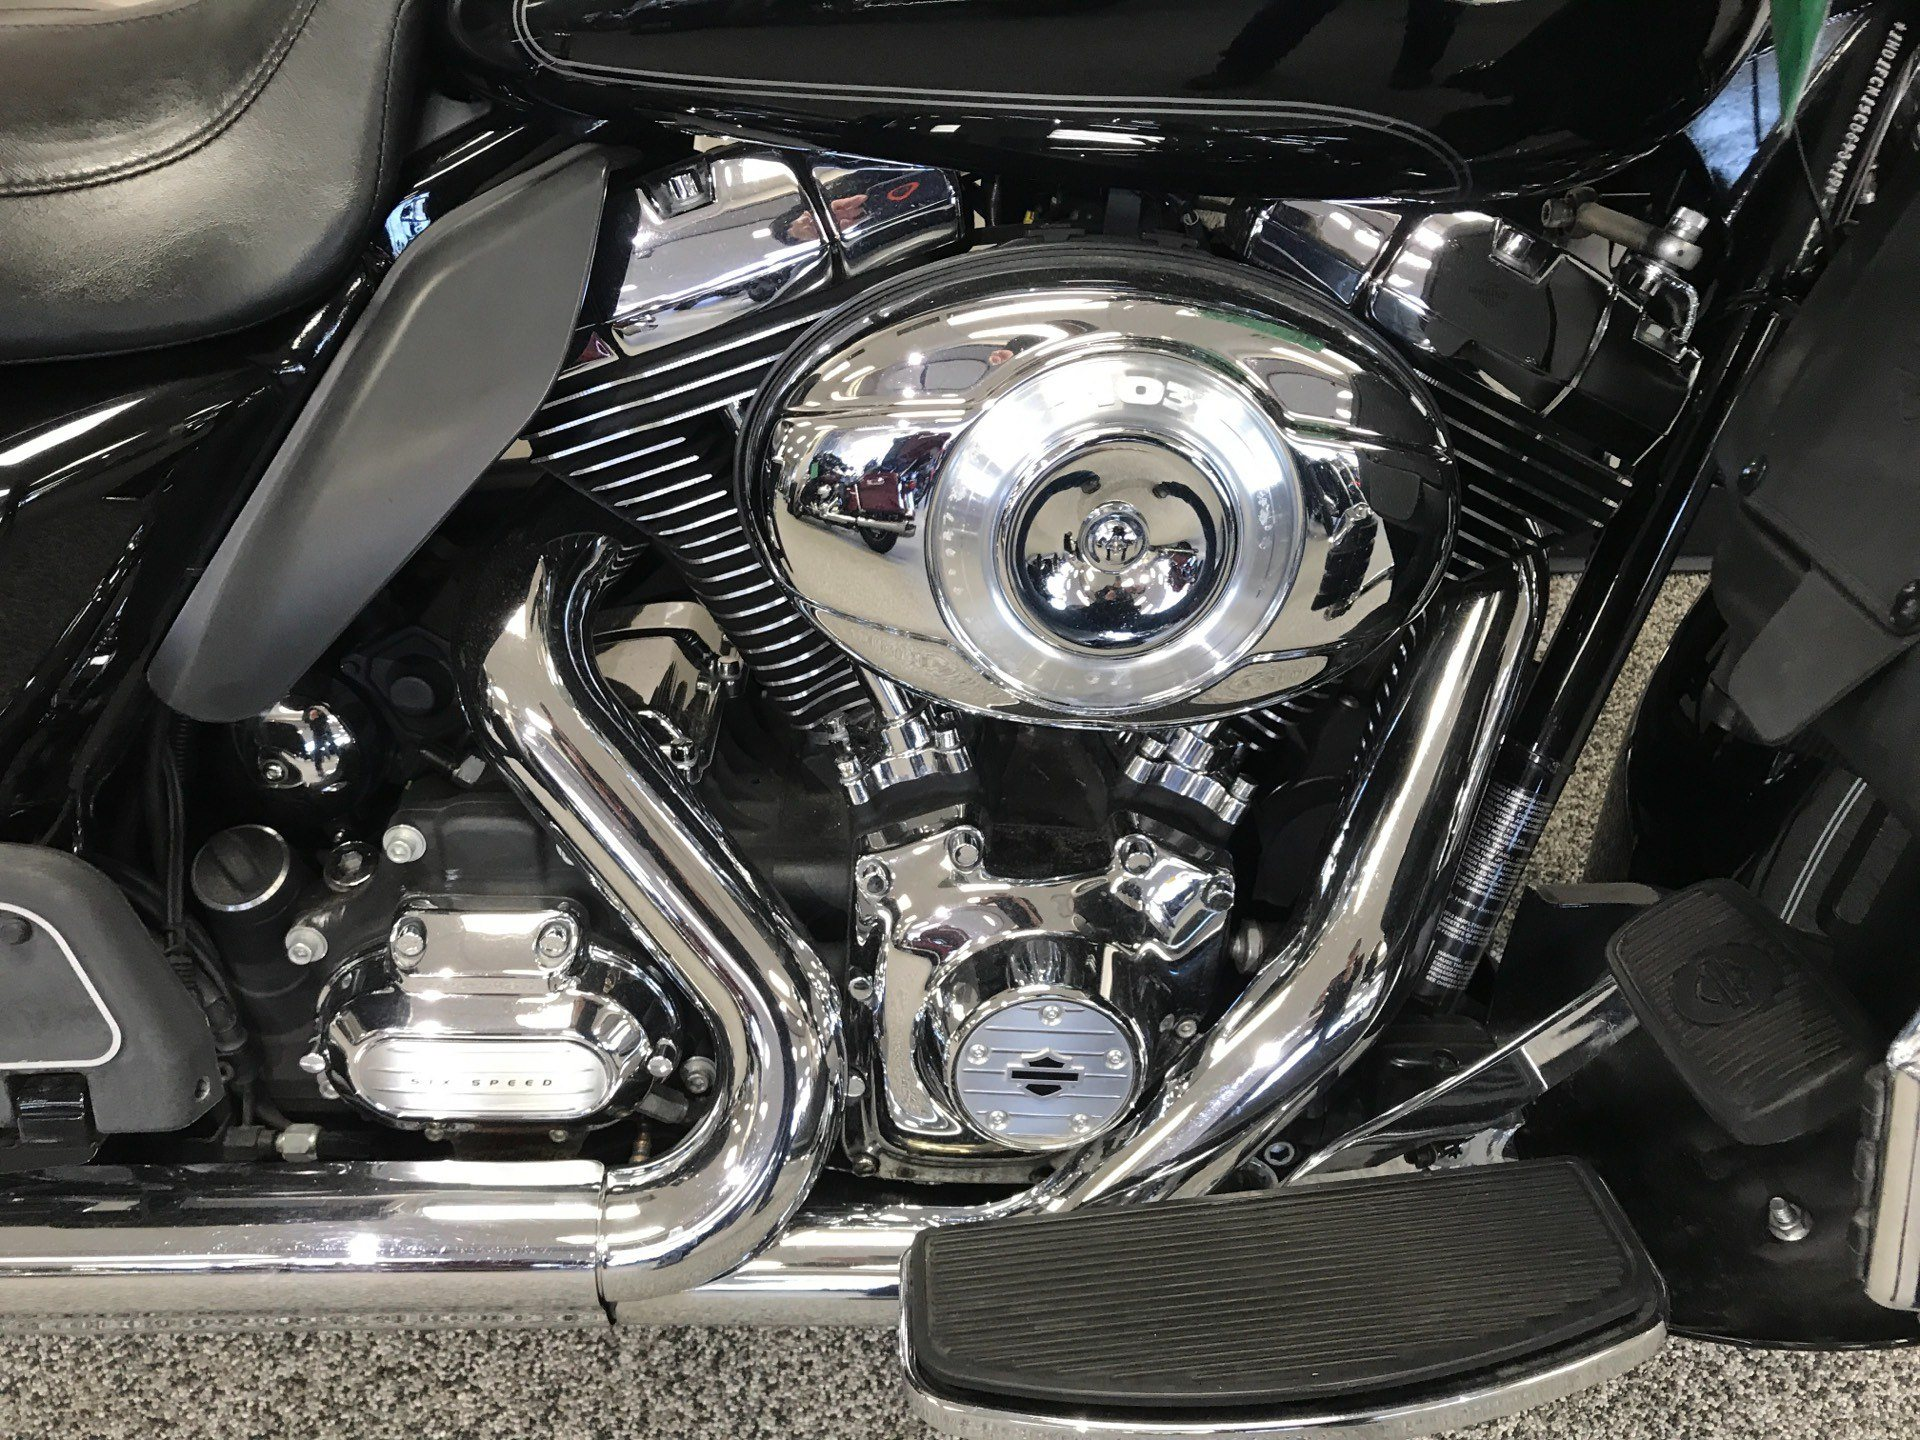 2012 Harley-Davidson Ultra Classic® Electra Glide® in Knoxville, Tennessee - Photo 2